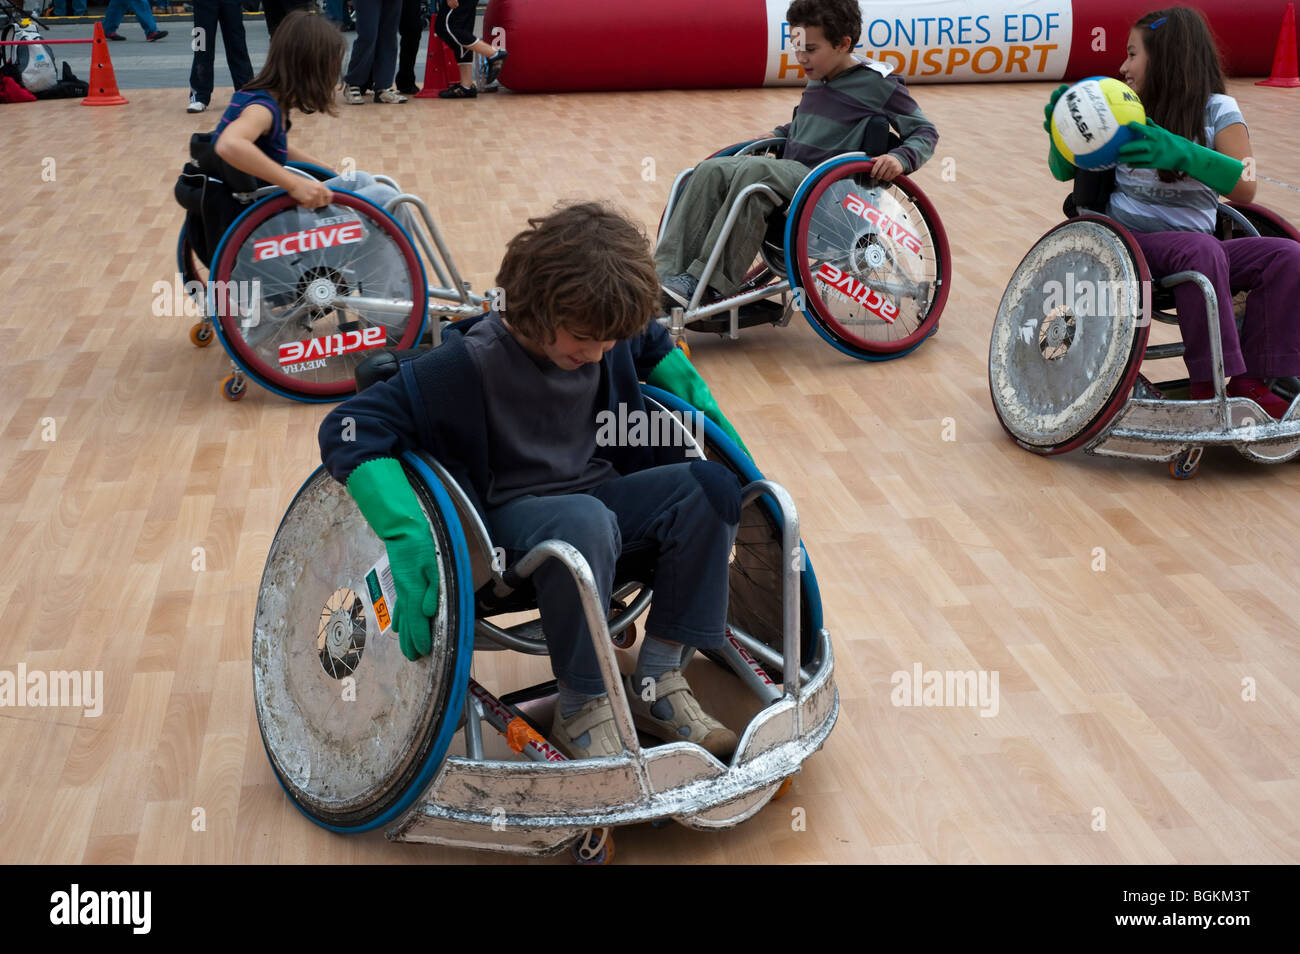 Paris, FRANCE - French Teens Acting out as Handicapped, Playing  School Sports Day - Stock Image